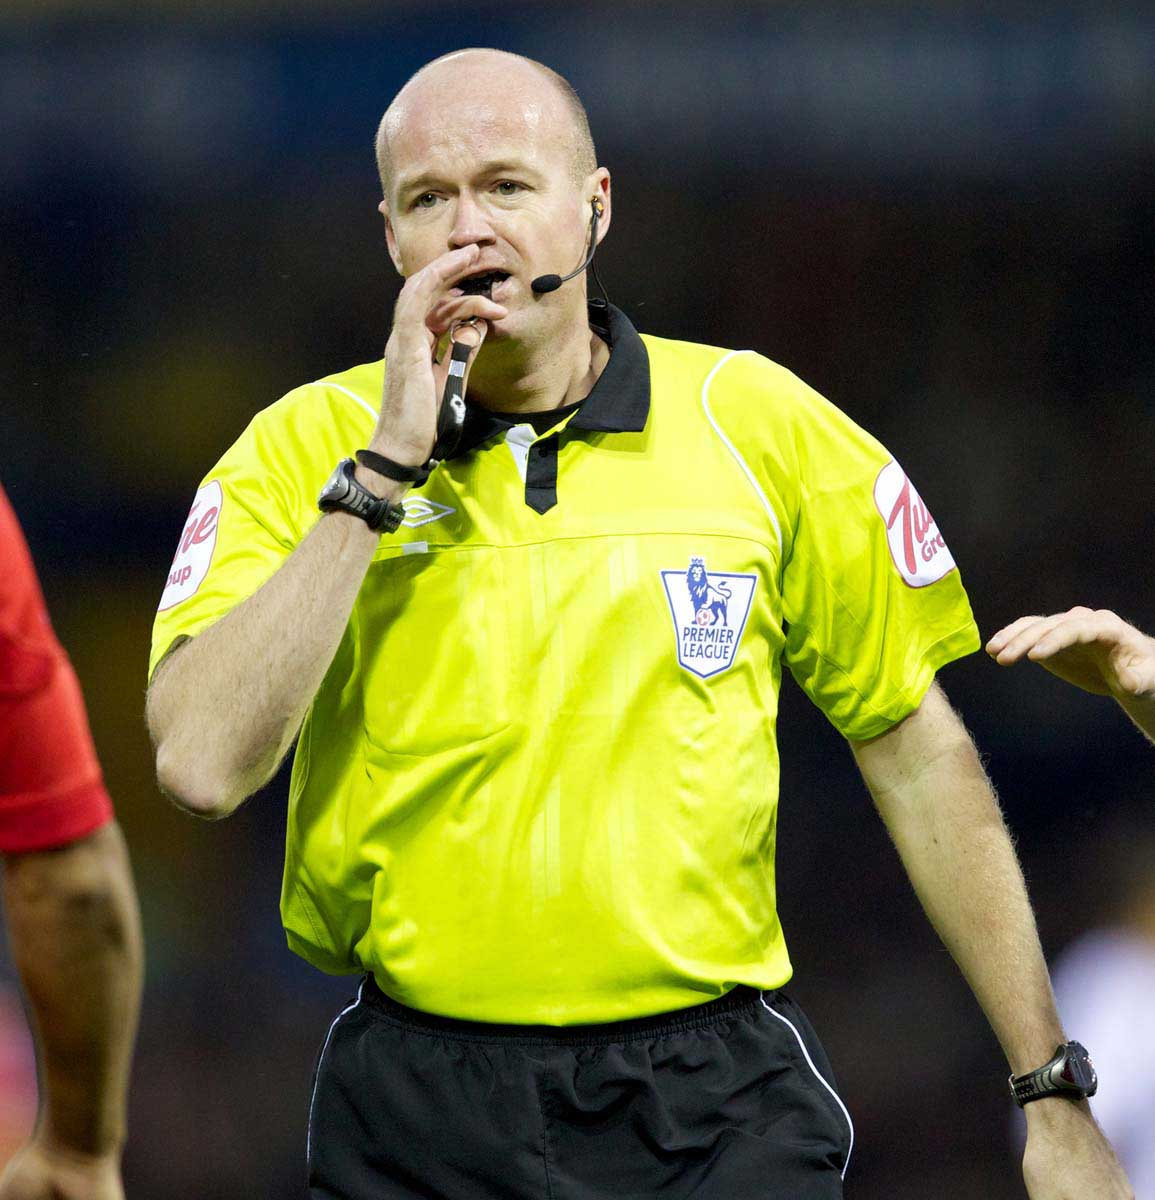 REFEREES: WHY DOES THE GAME DO SWEET FA ABOUT FAILING OFFICIALS?